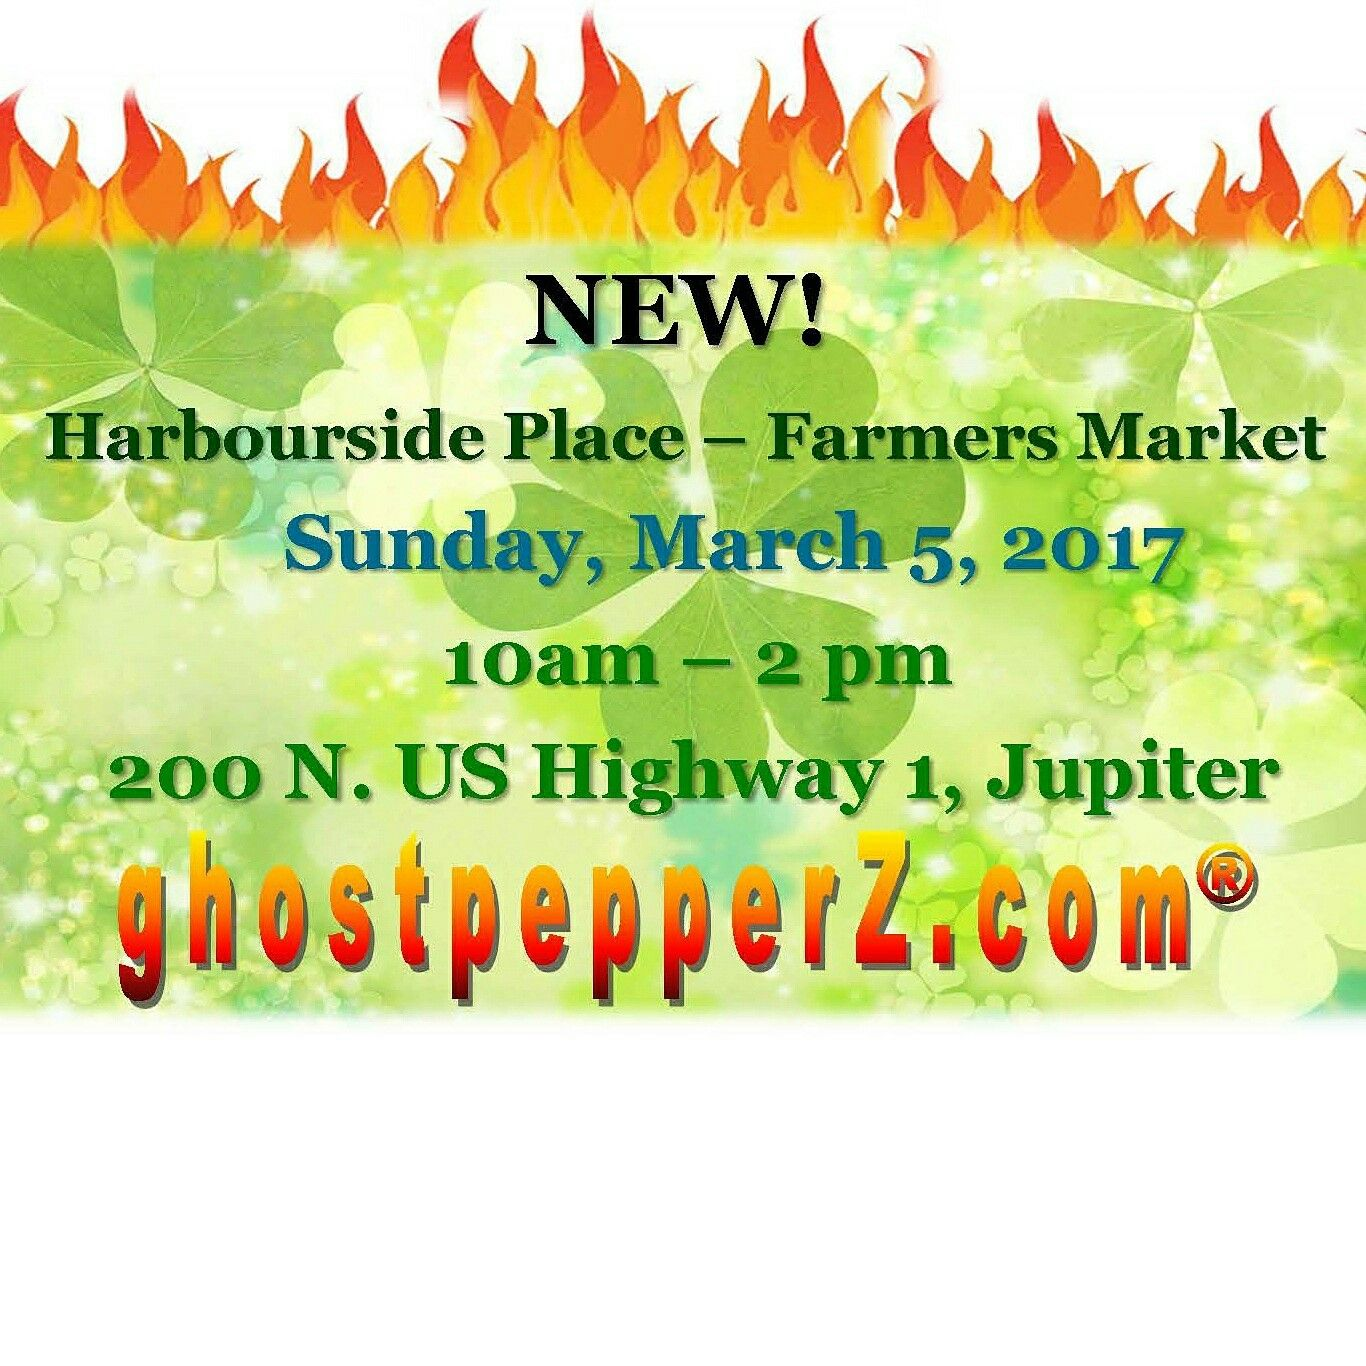 NEW! VISIT US at Harbourside Place - Jupiter GreenMarket ▪▪▪  Sun. 3/5 (10a-2p)  Scenic open-air local market, right on the Intercoastal Waterway,  hope to see you there!  www.ghostpepperZ.com  #ghostpepperZ